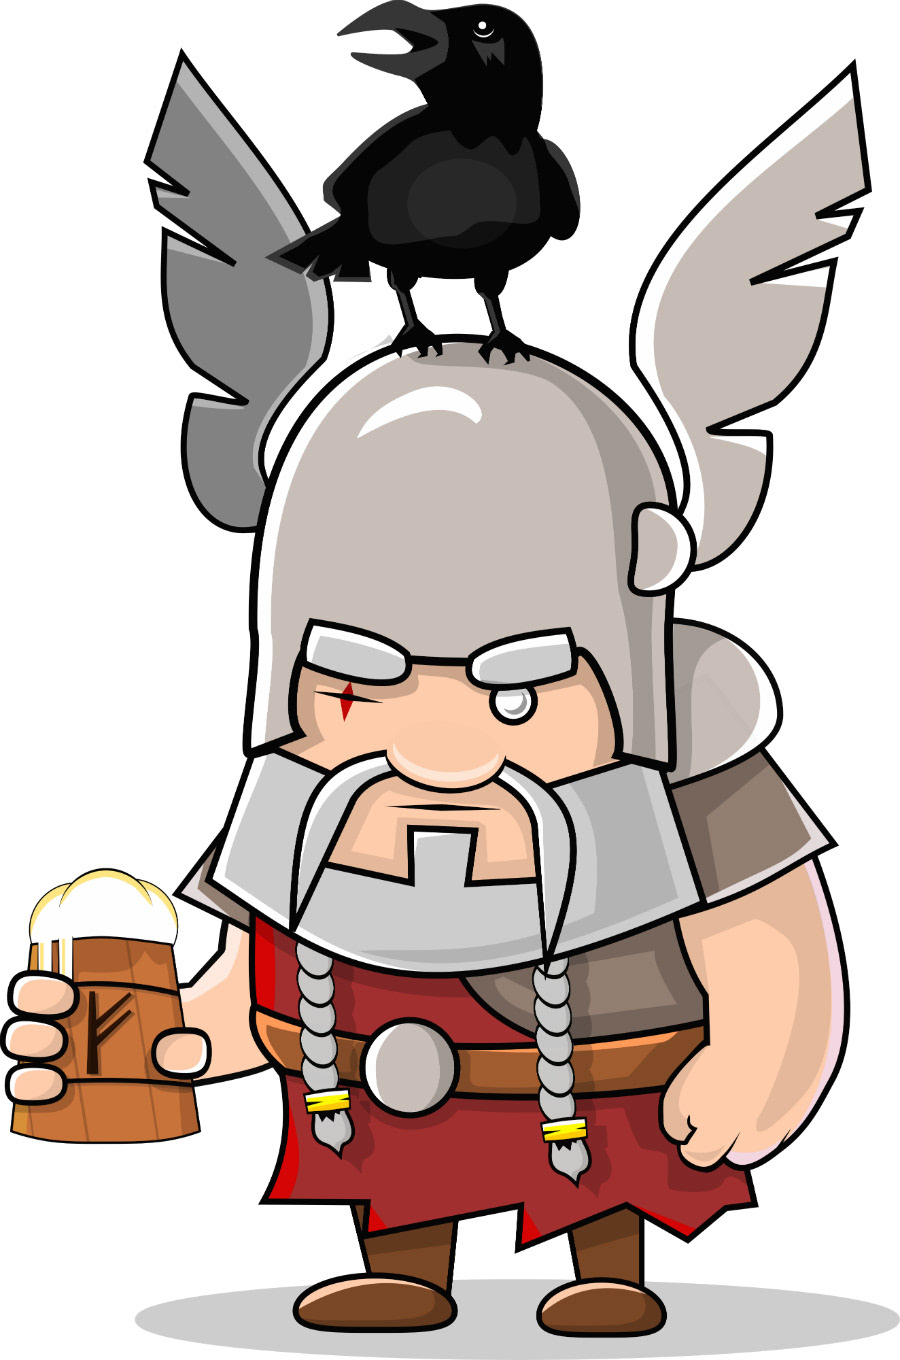 boardgame card cards cardgame Circus game nordic Norse Odin valhalla